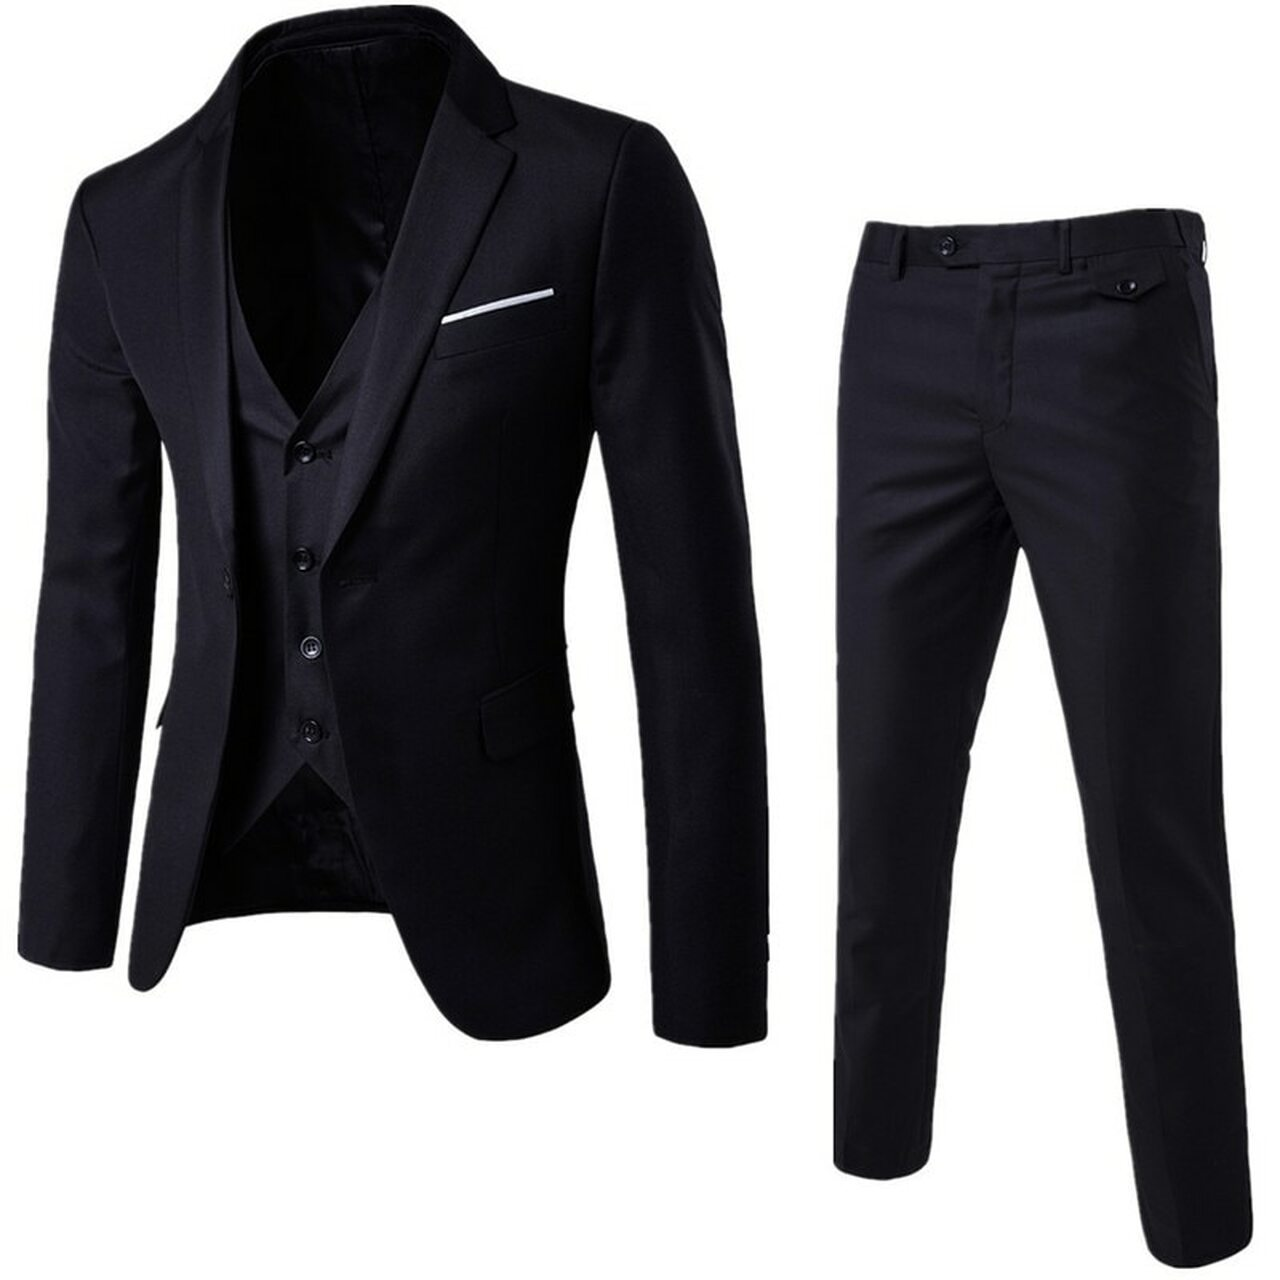 Jacket Pant Vest Luxury Men Wedding Suit Male Blazers Slim Fit Suits For Men Costume Business Formal Party Blue Classic Black